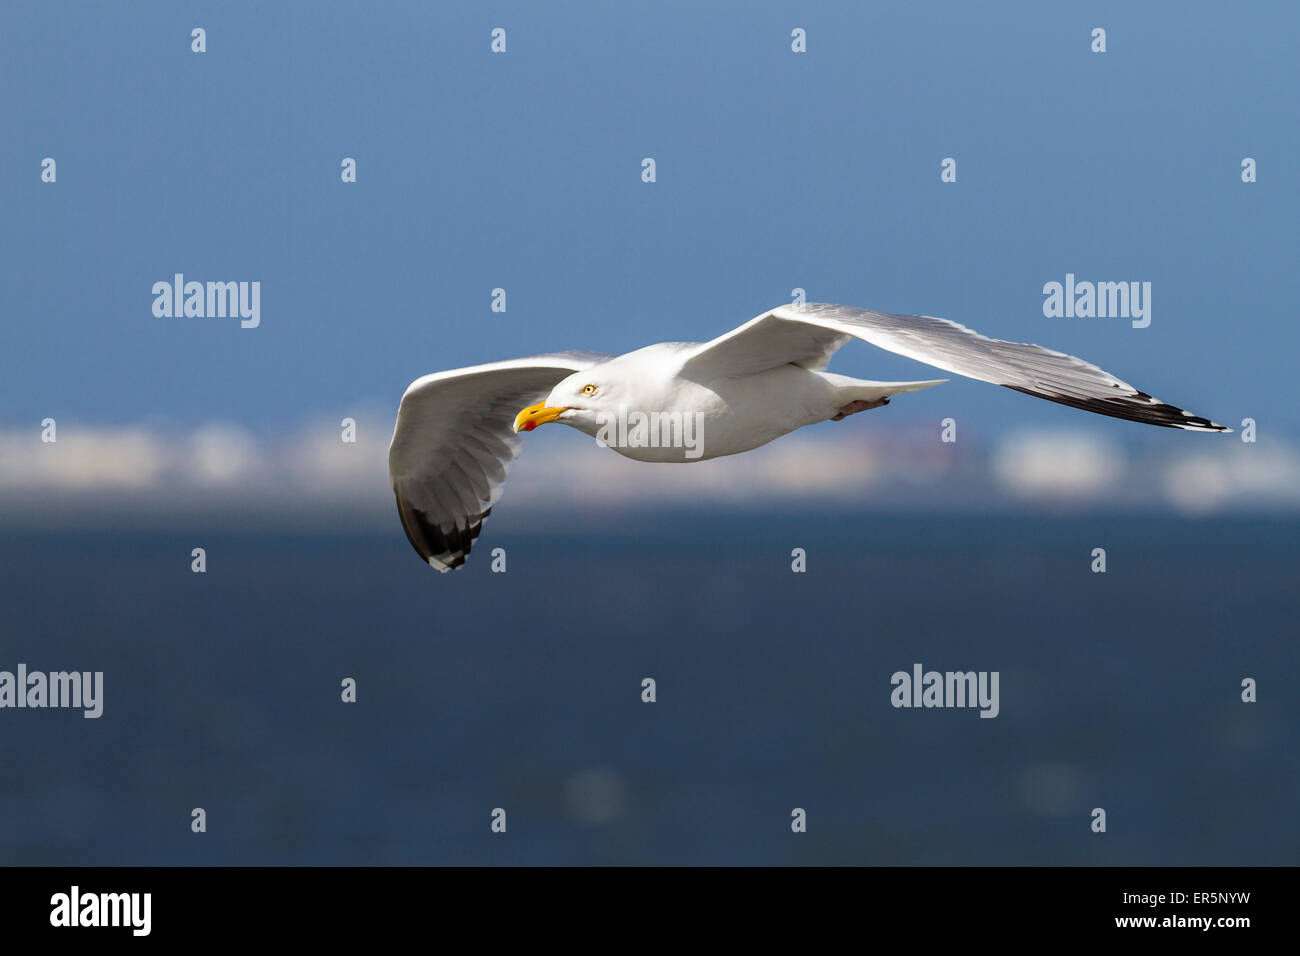 Herring gull in flight, Larus argentatus, North Sea, Germany - Stock Image